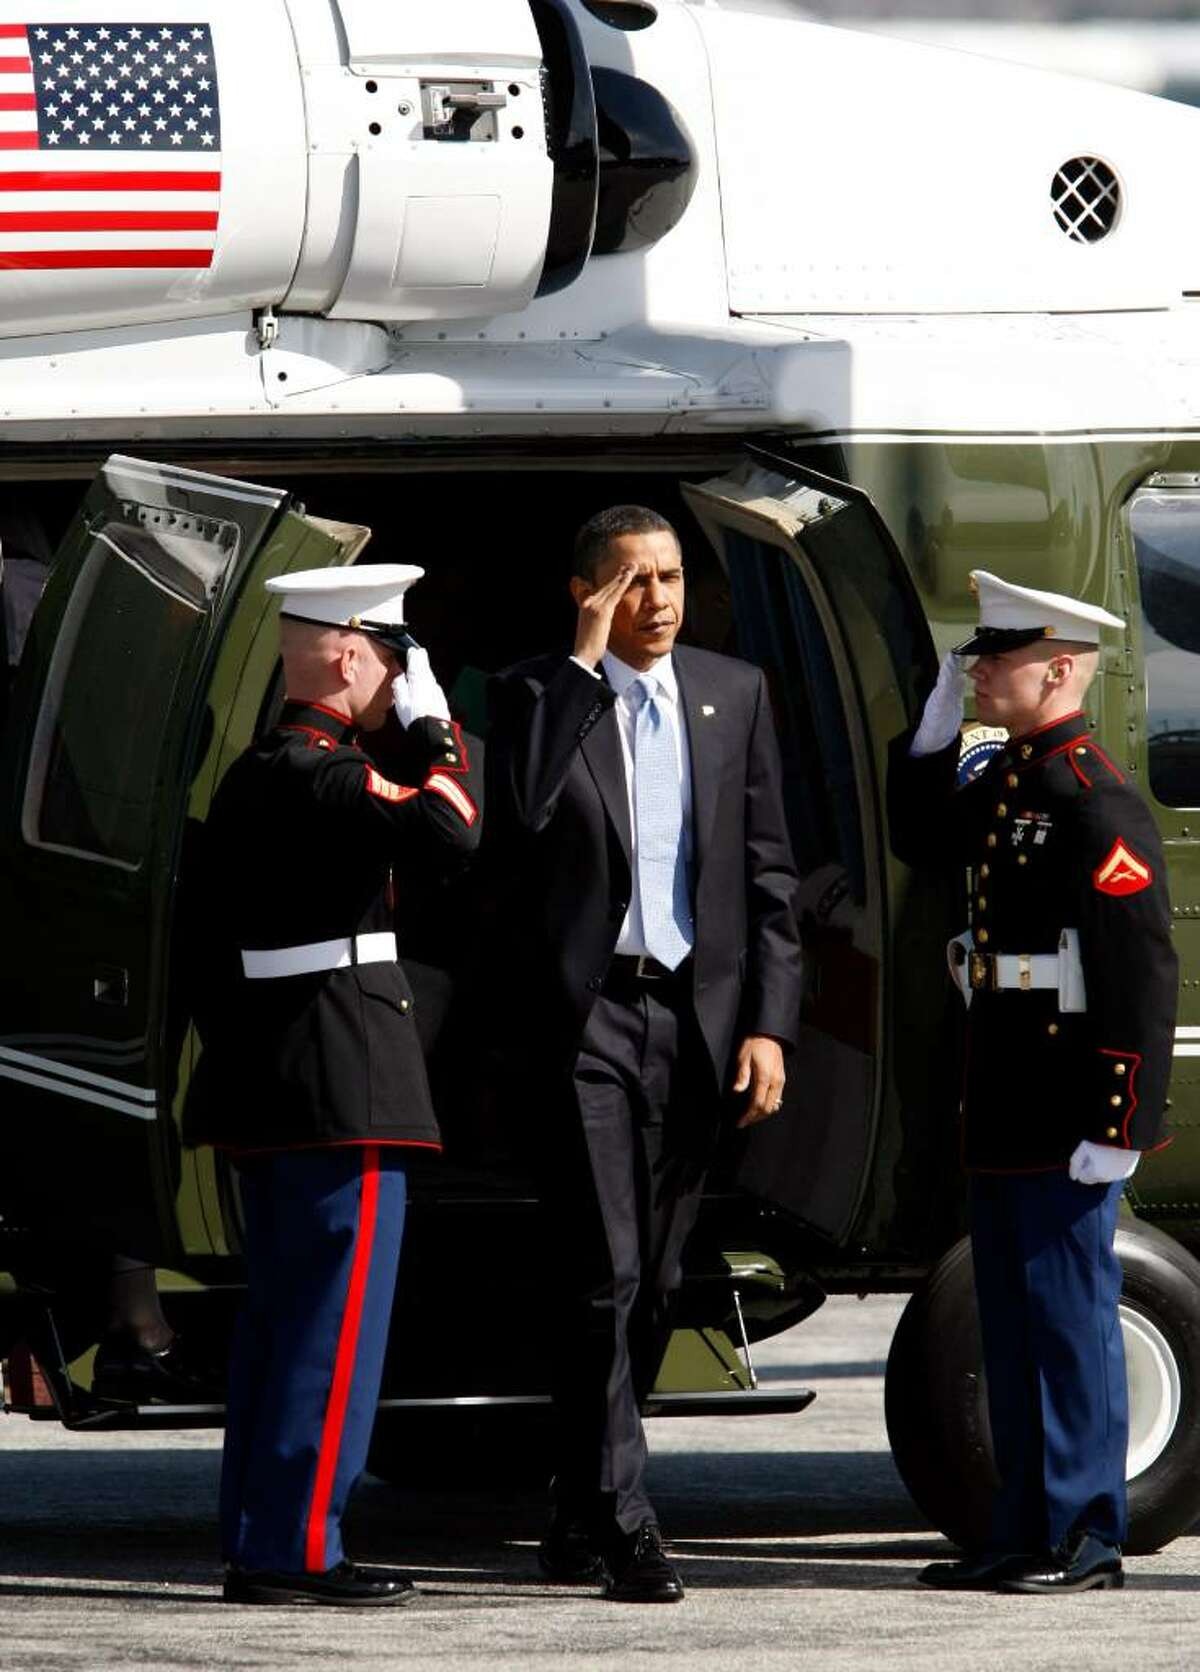 Sikorsky has a long history in supplying the Marines with presidential helicopters dating to President Eisenhower's use of the Sikorsky H-42 in 1958. In this photo, President Barack Obama salutes as he steps off of one of the smaller Sikorsky VH-60 helicopters.